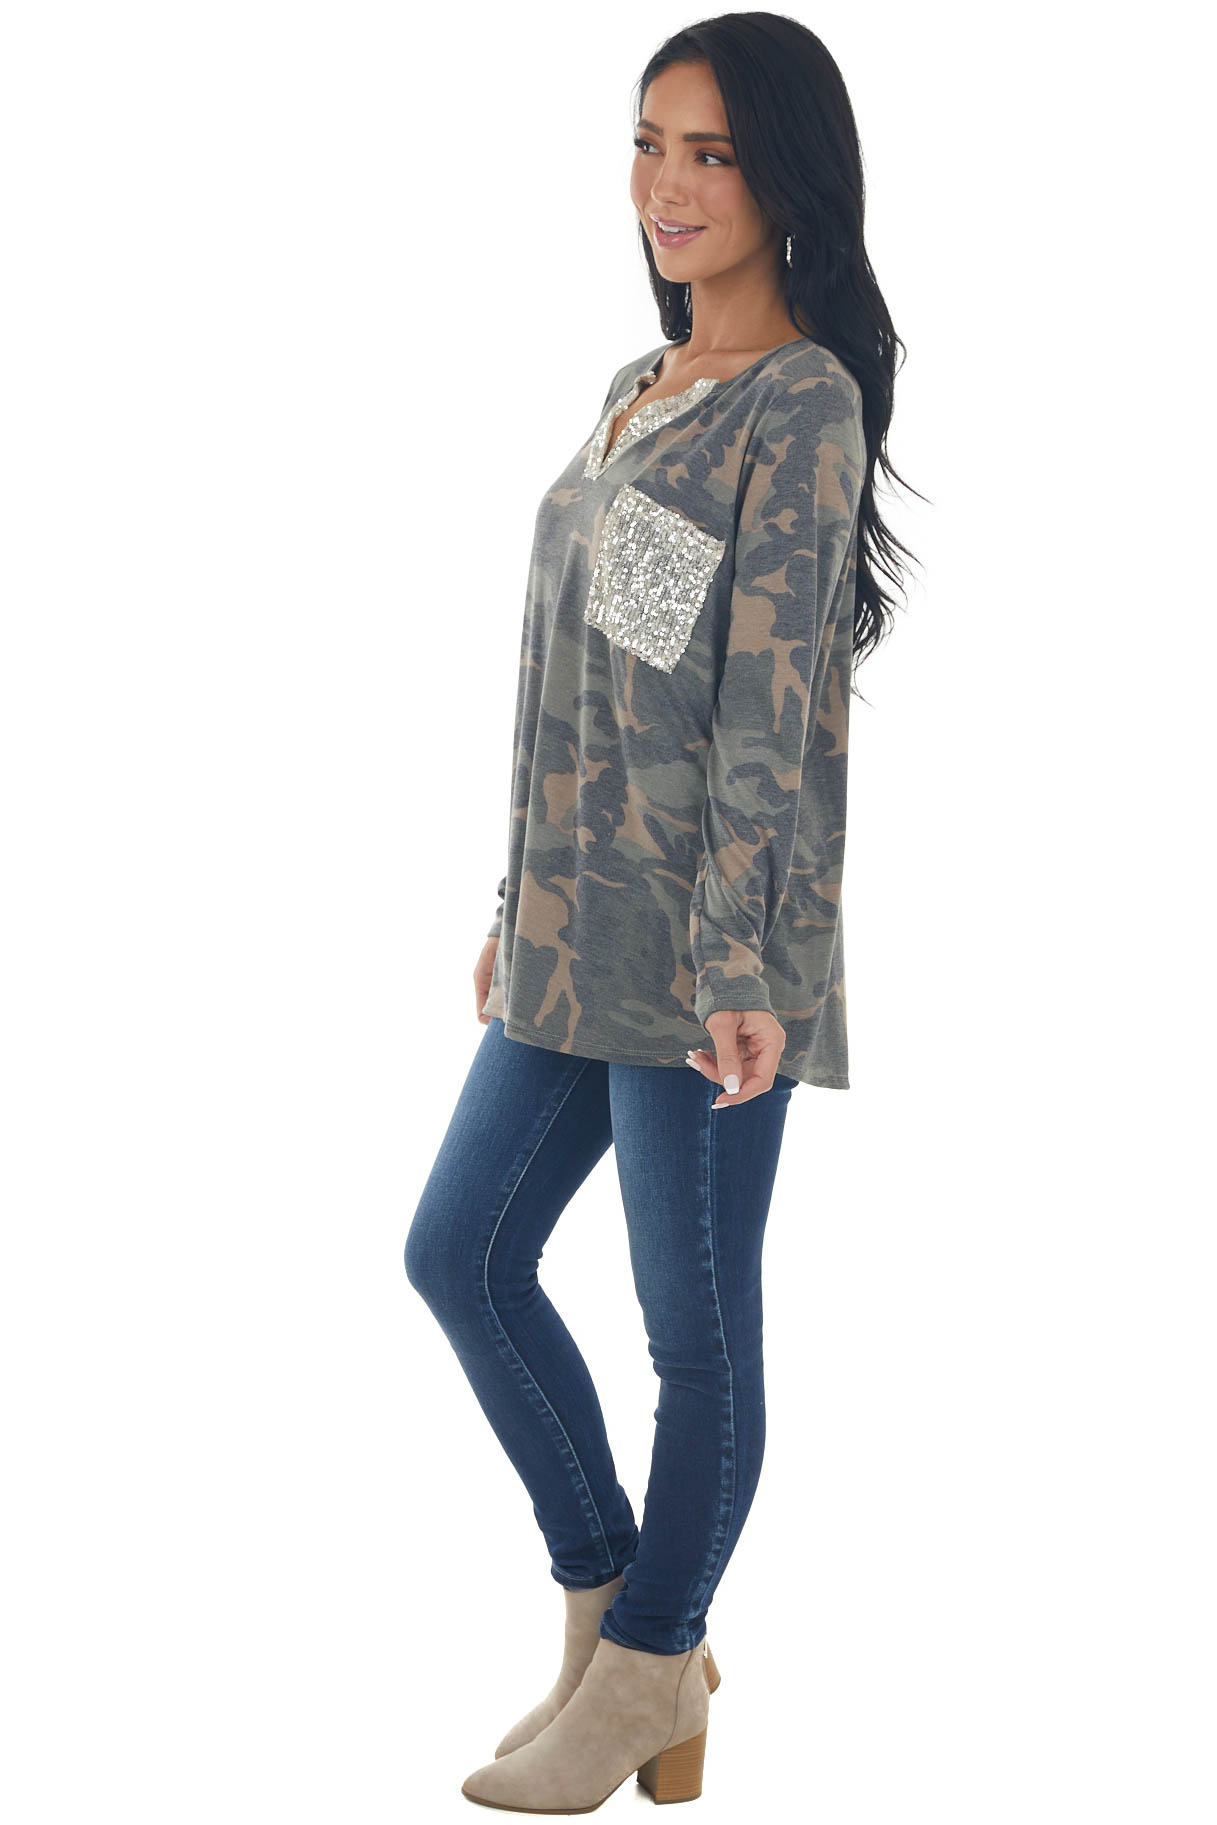 Charcoal Camo Print Long Sleeve Top with Sequin Detail